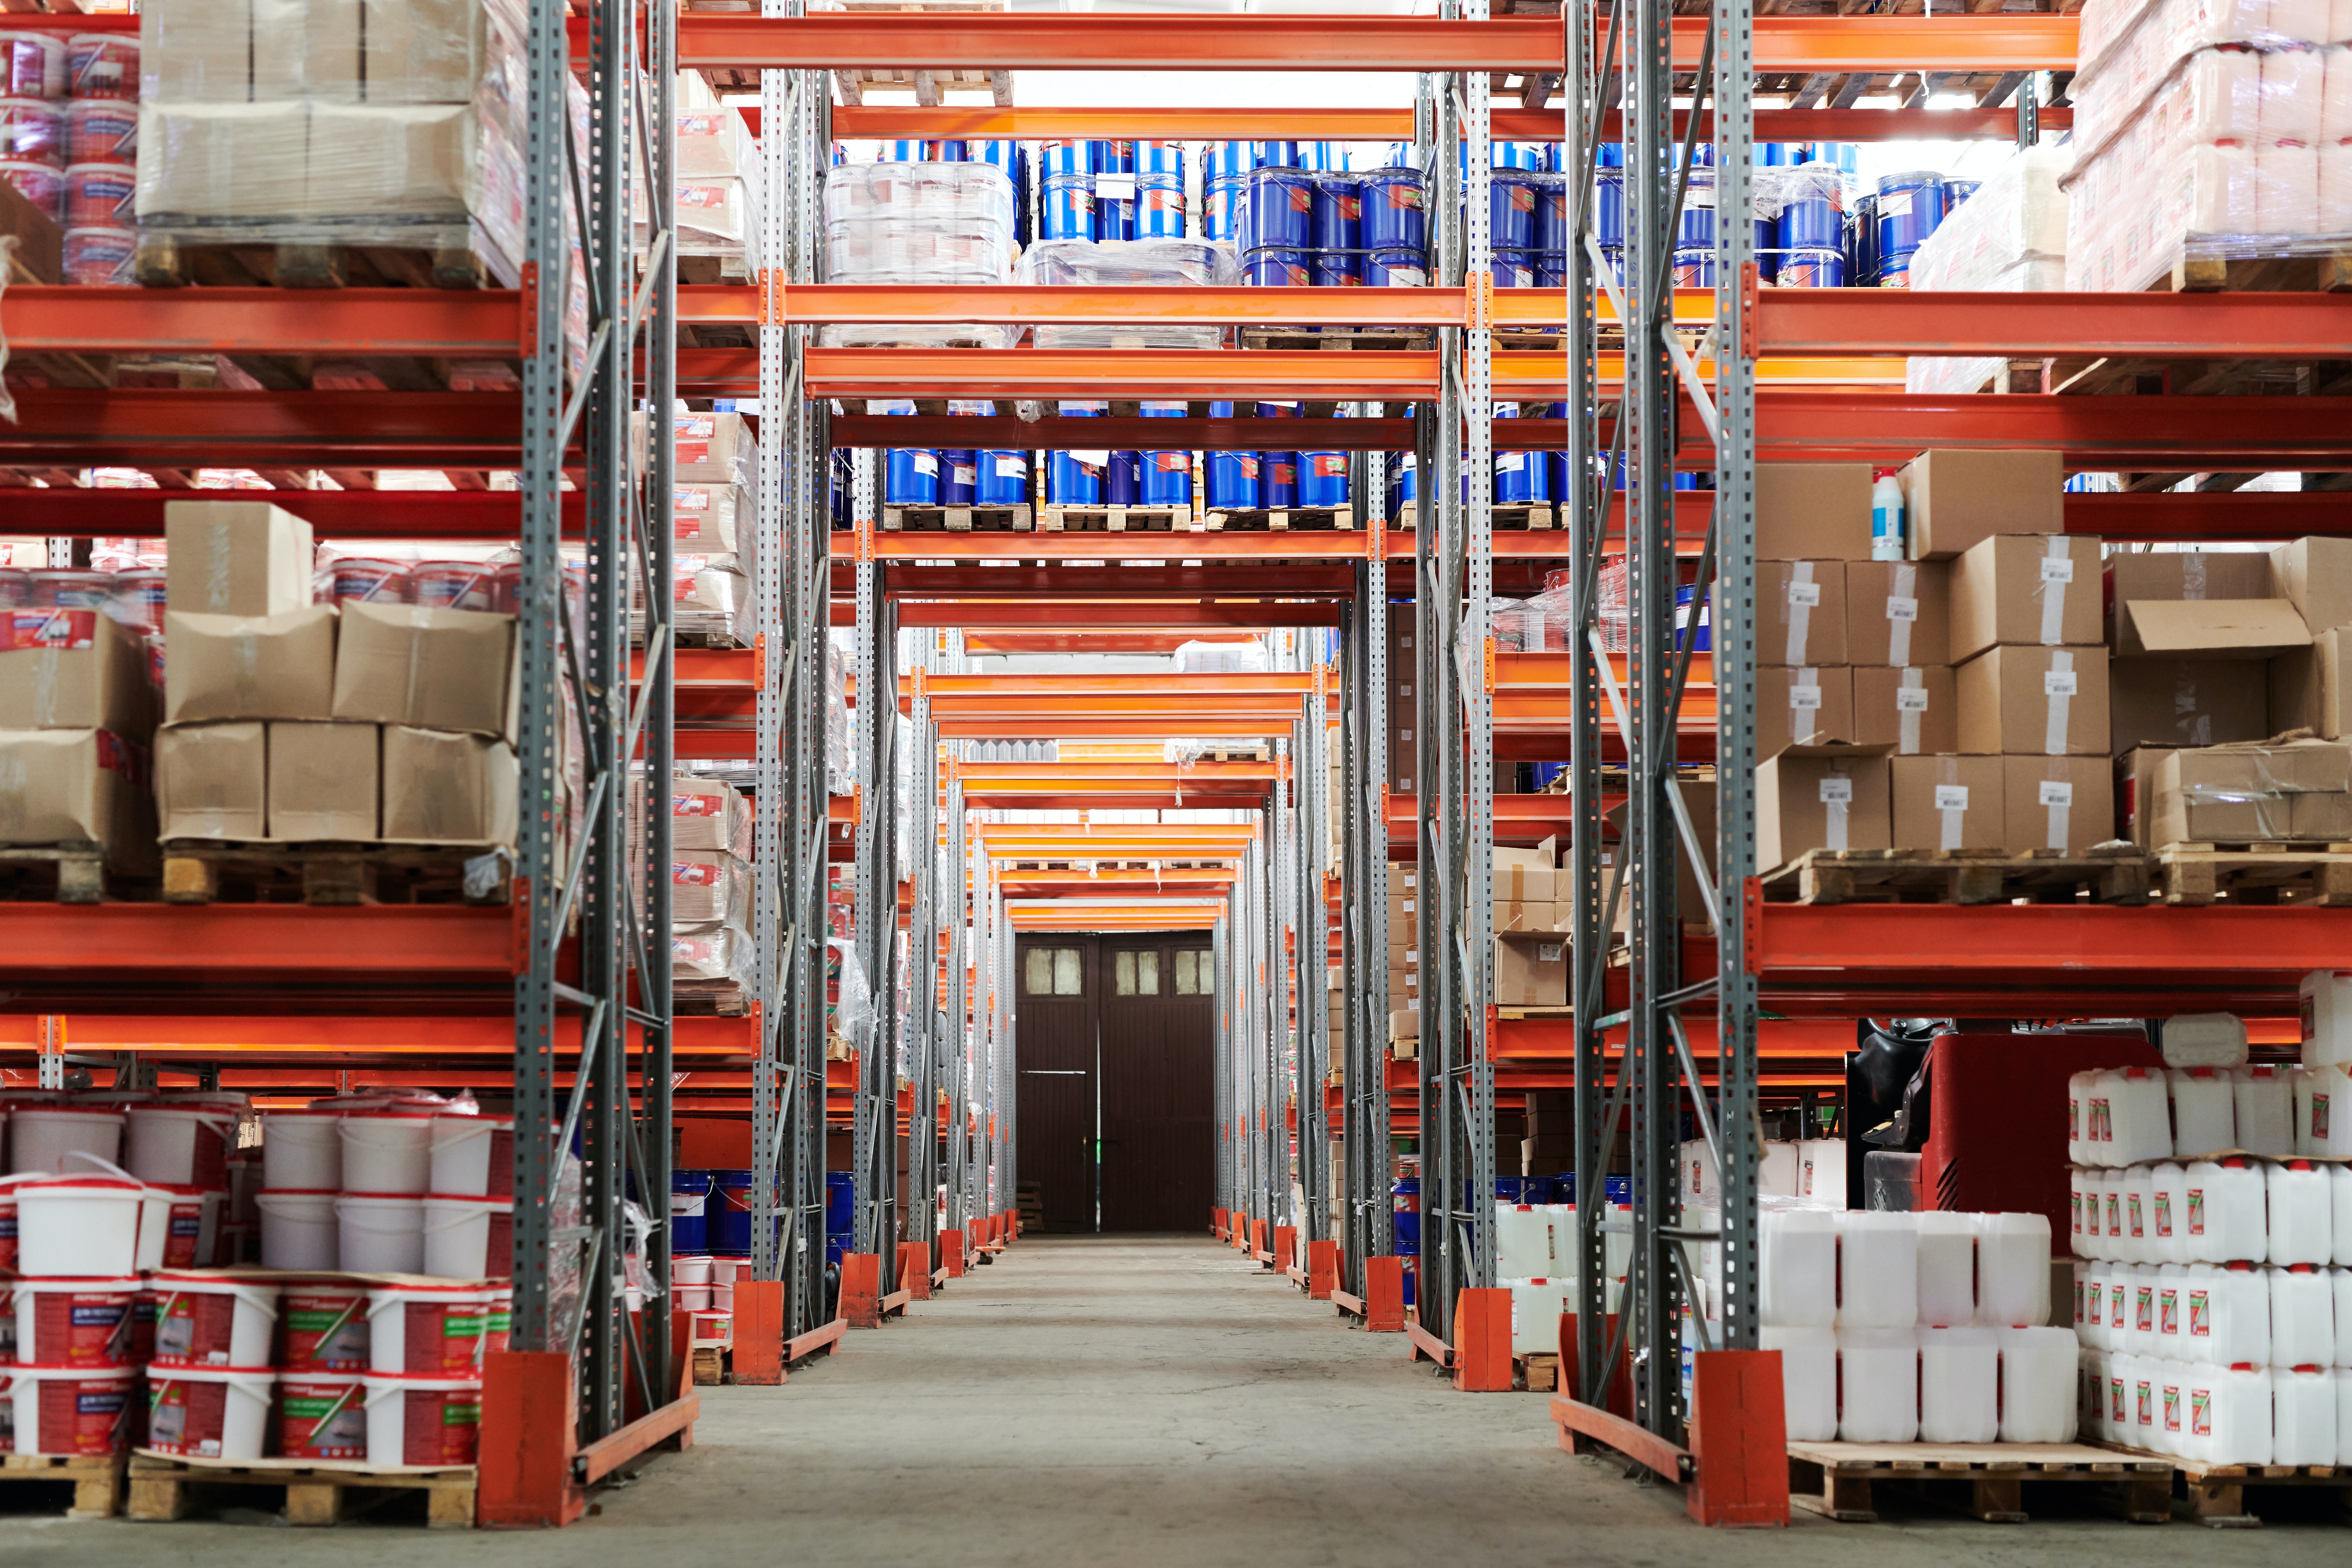 Getting your cargo to a warehouse is a complicated process to learn, but not impossible!